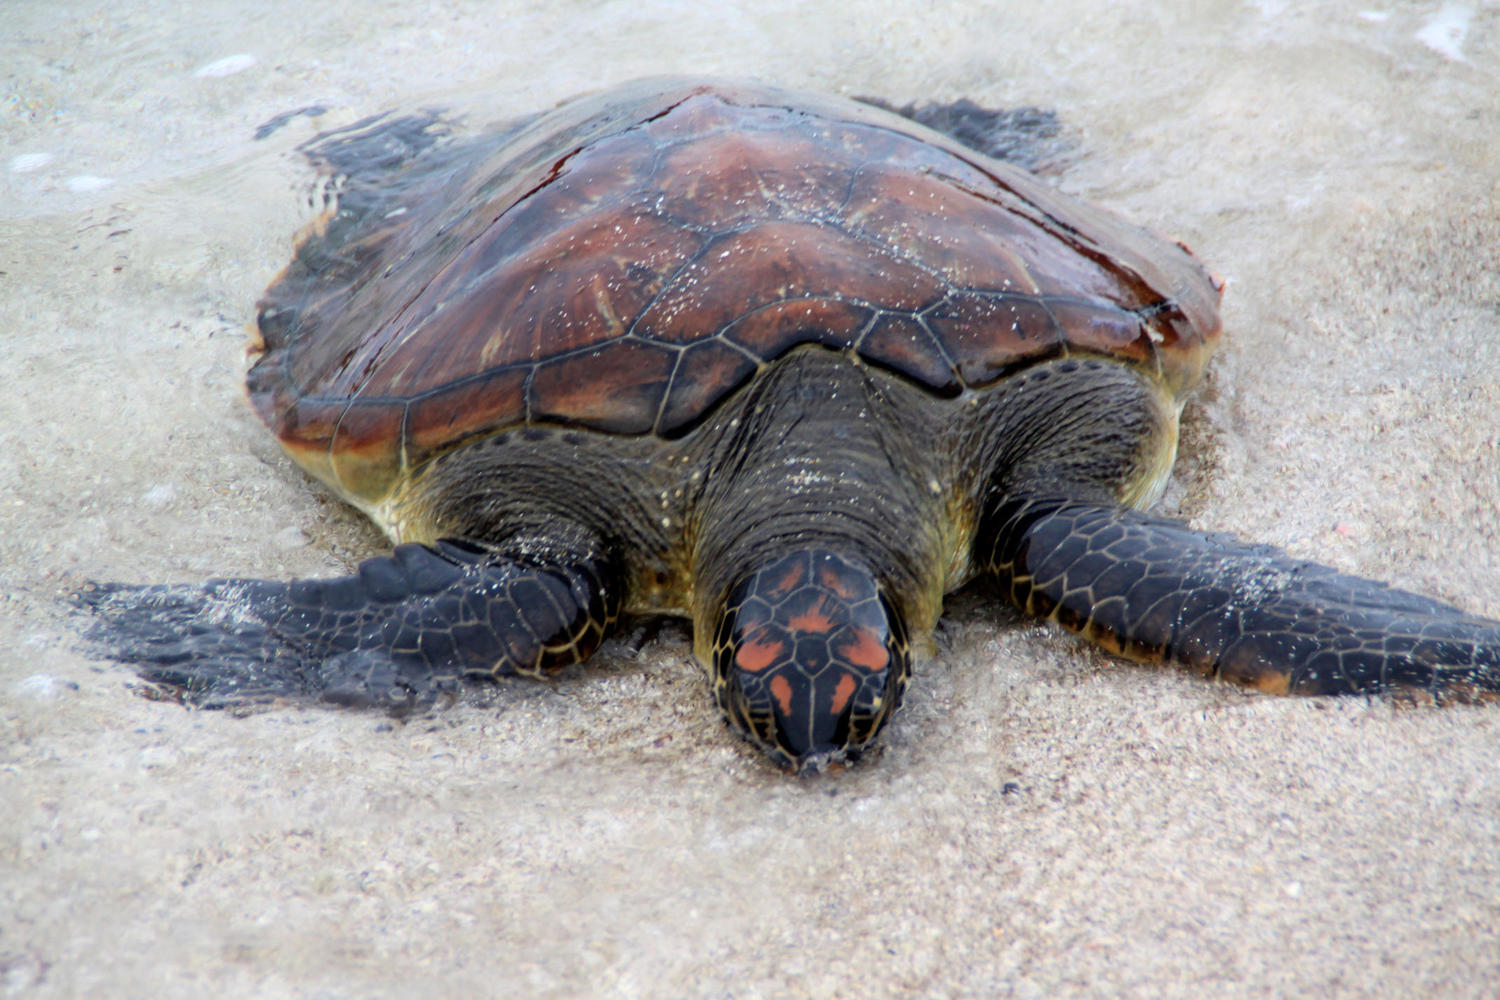 A leatherback turtle coming ashore in the Galapagos